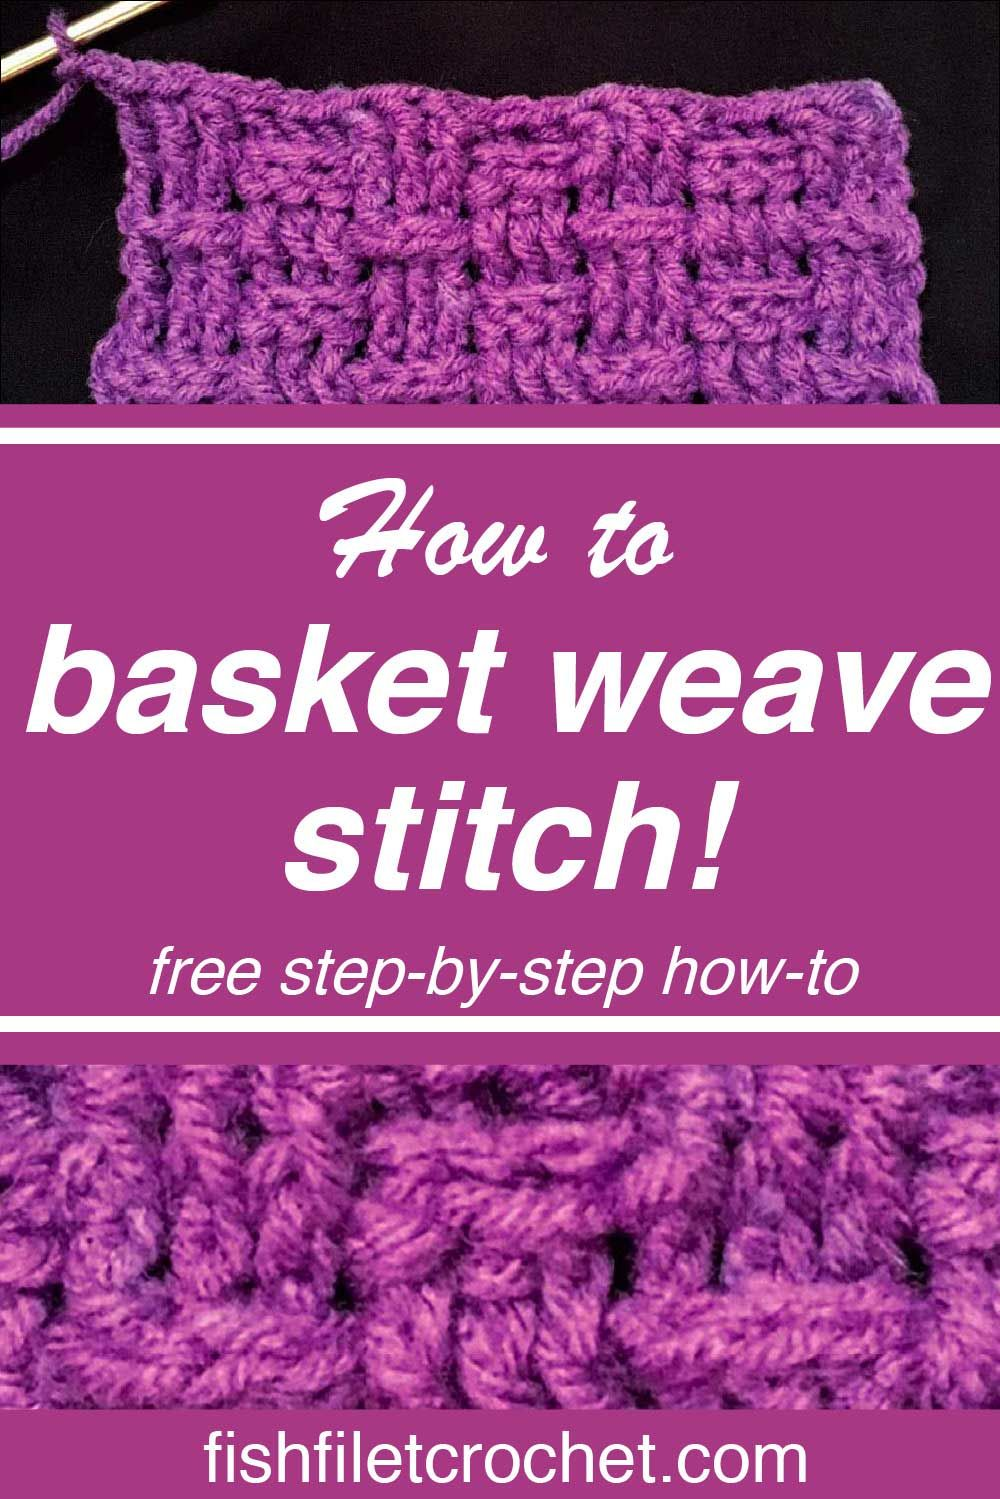 Forget all your troubles and crochet the basket weave stitch! Working the  even steady pattern is calming as your pretty pattern grows. The soothing  rhythm ...